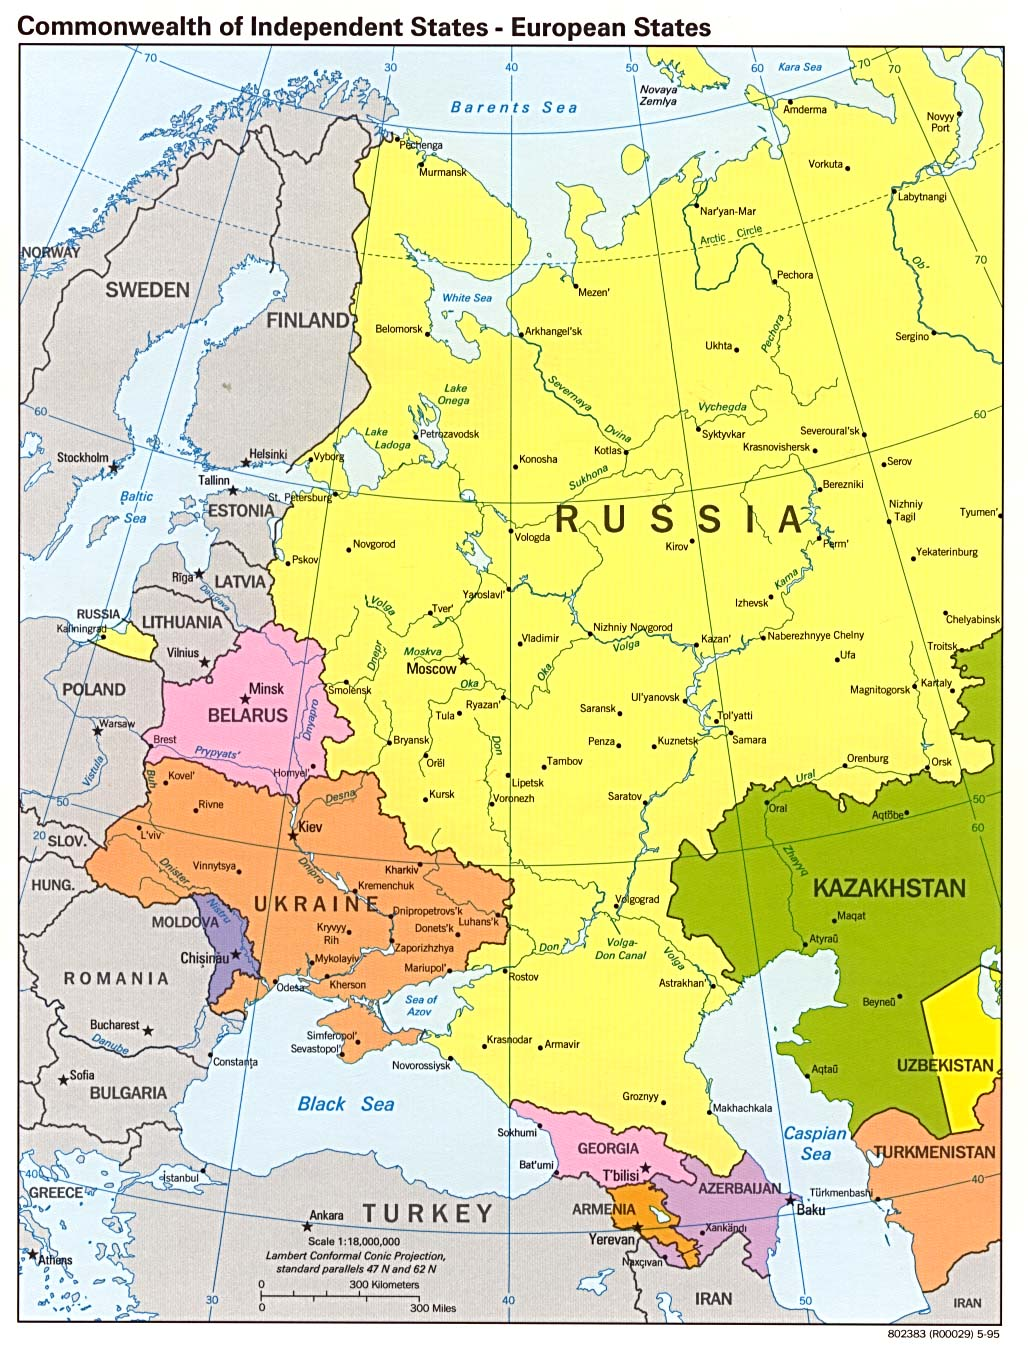 Europe Map Russia | europeancytokinesociety